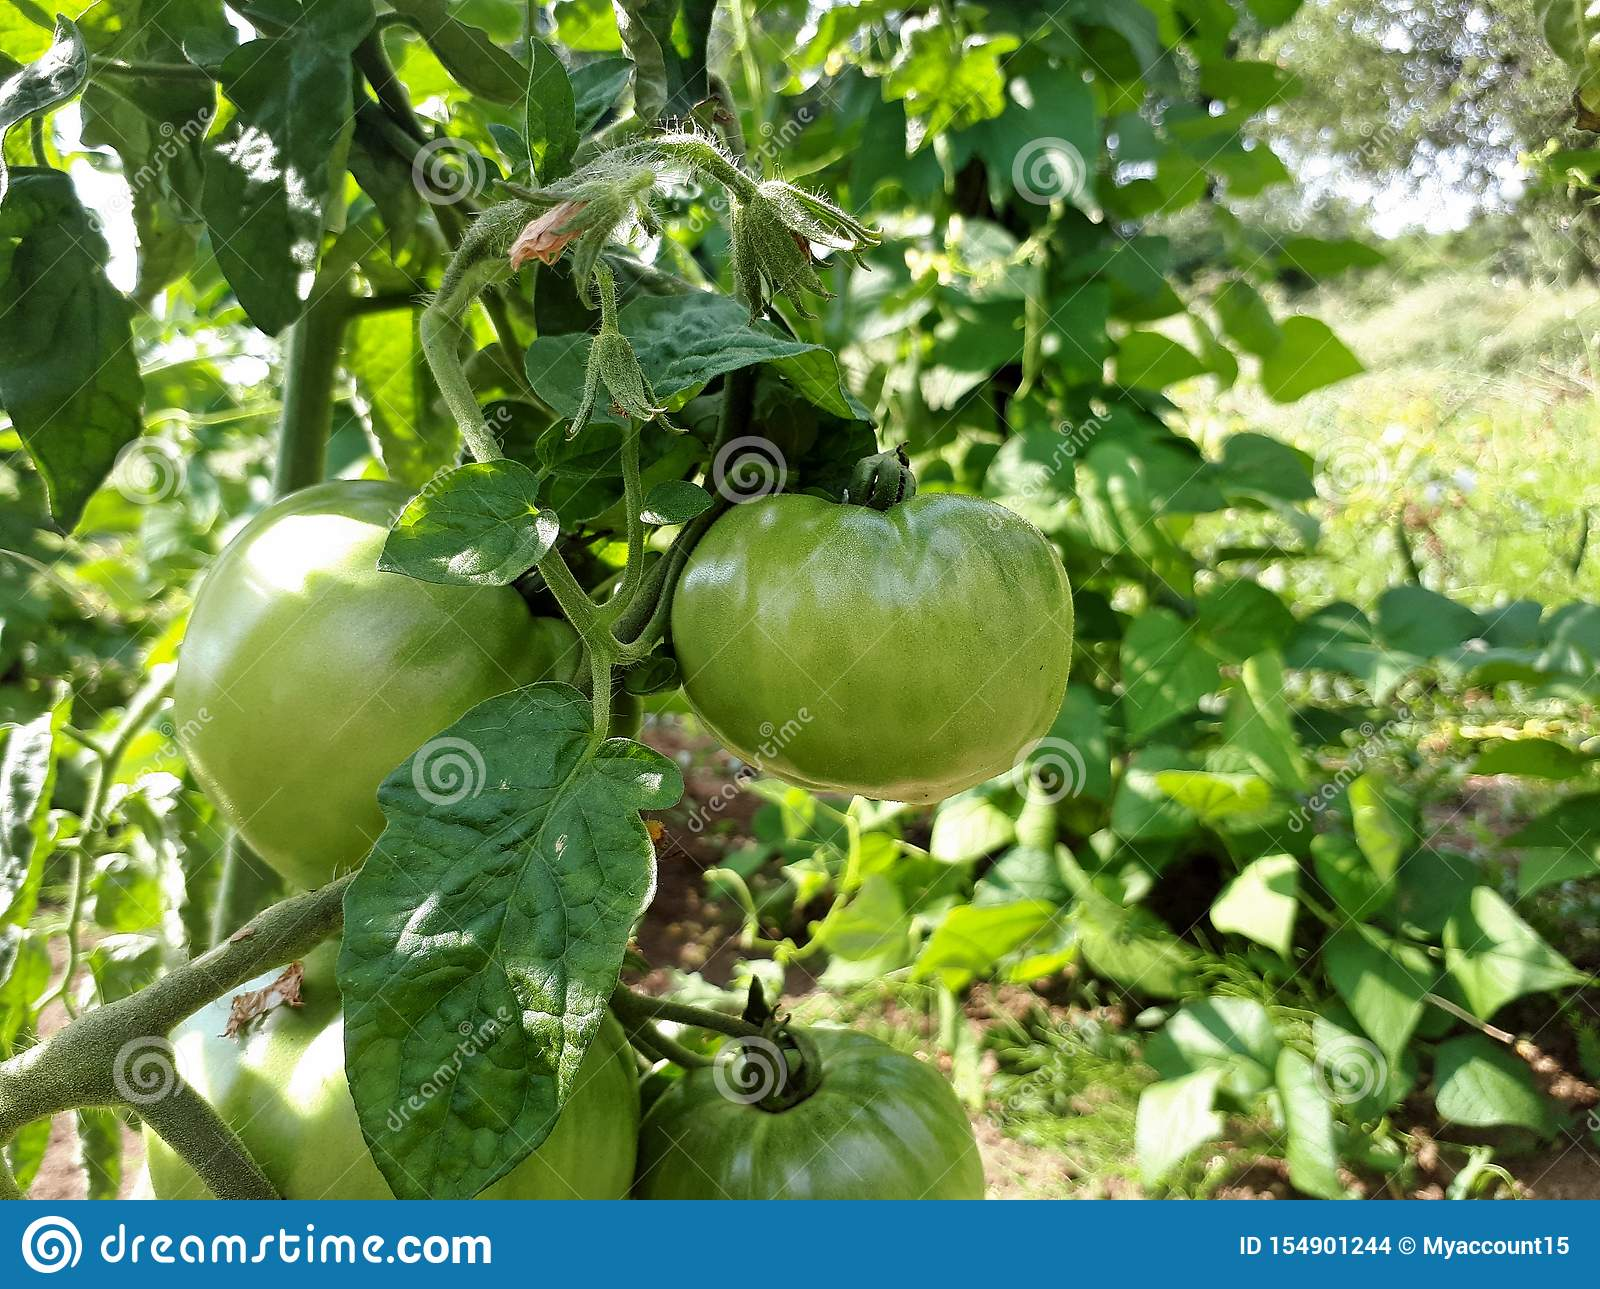 Green Tomatoes On Branch Growing Tomatoes In Garden Agriculture